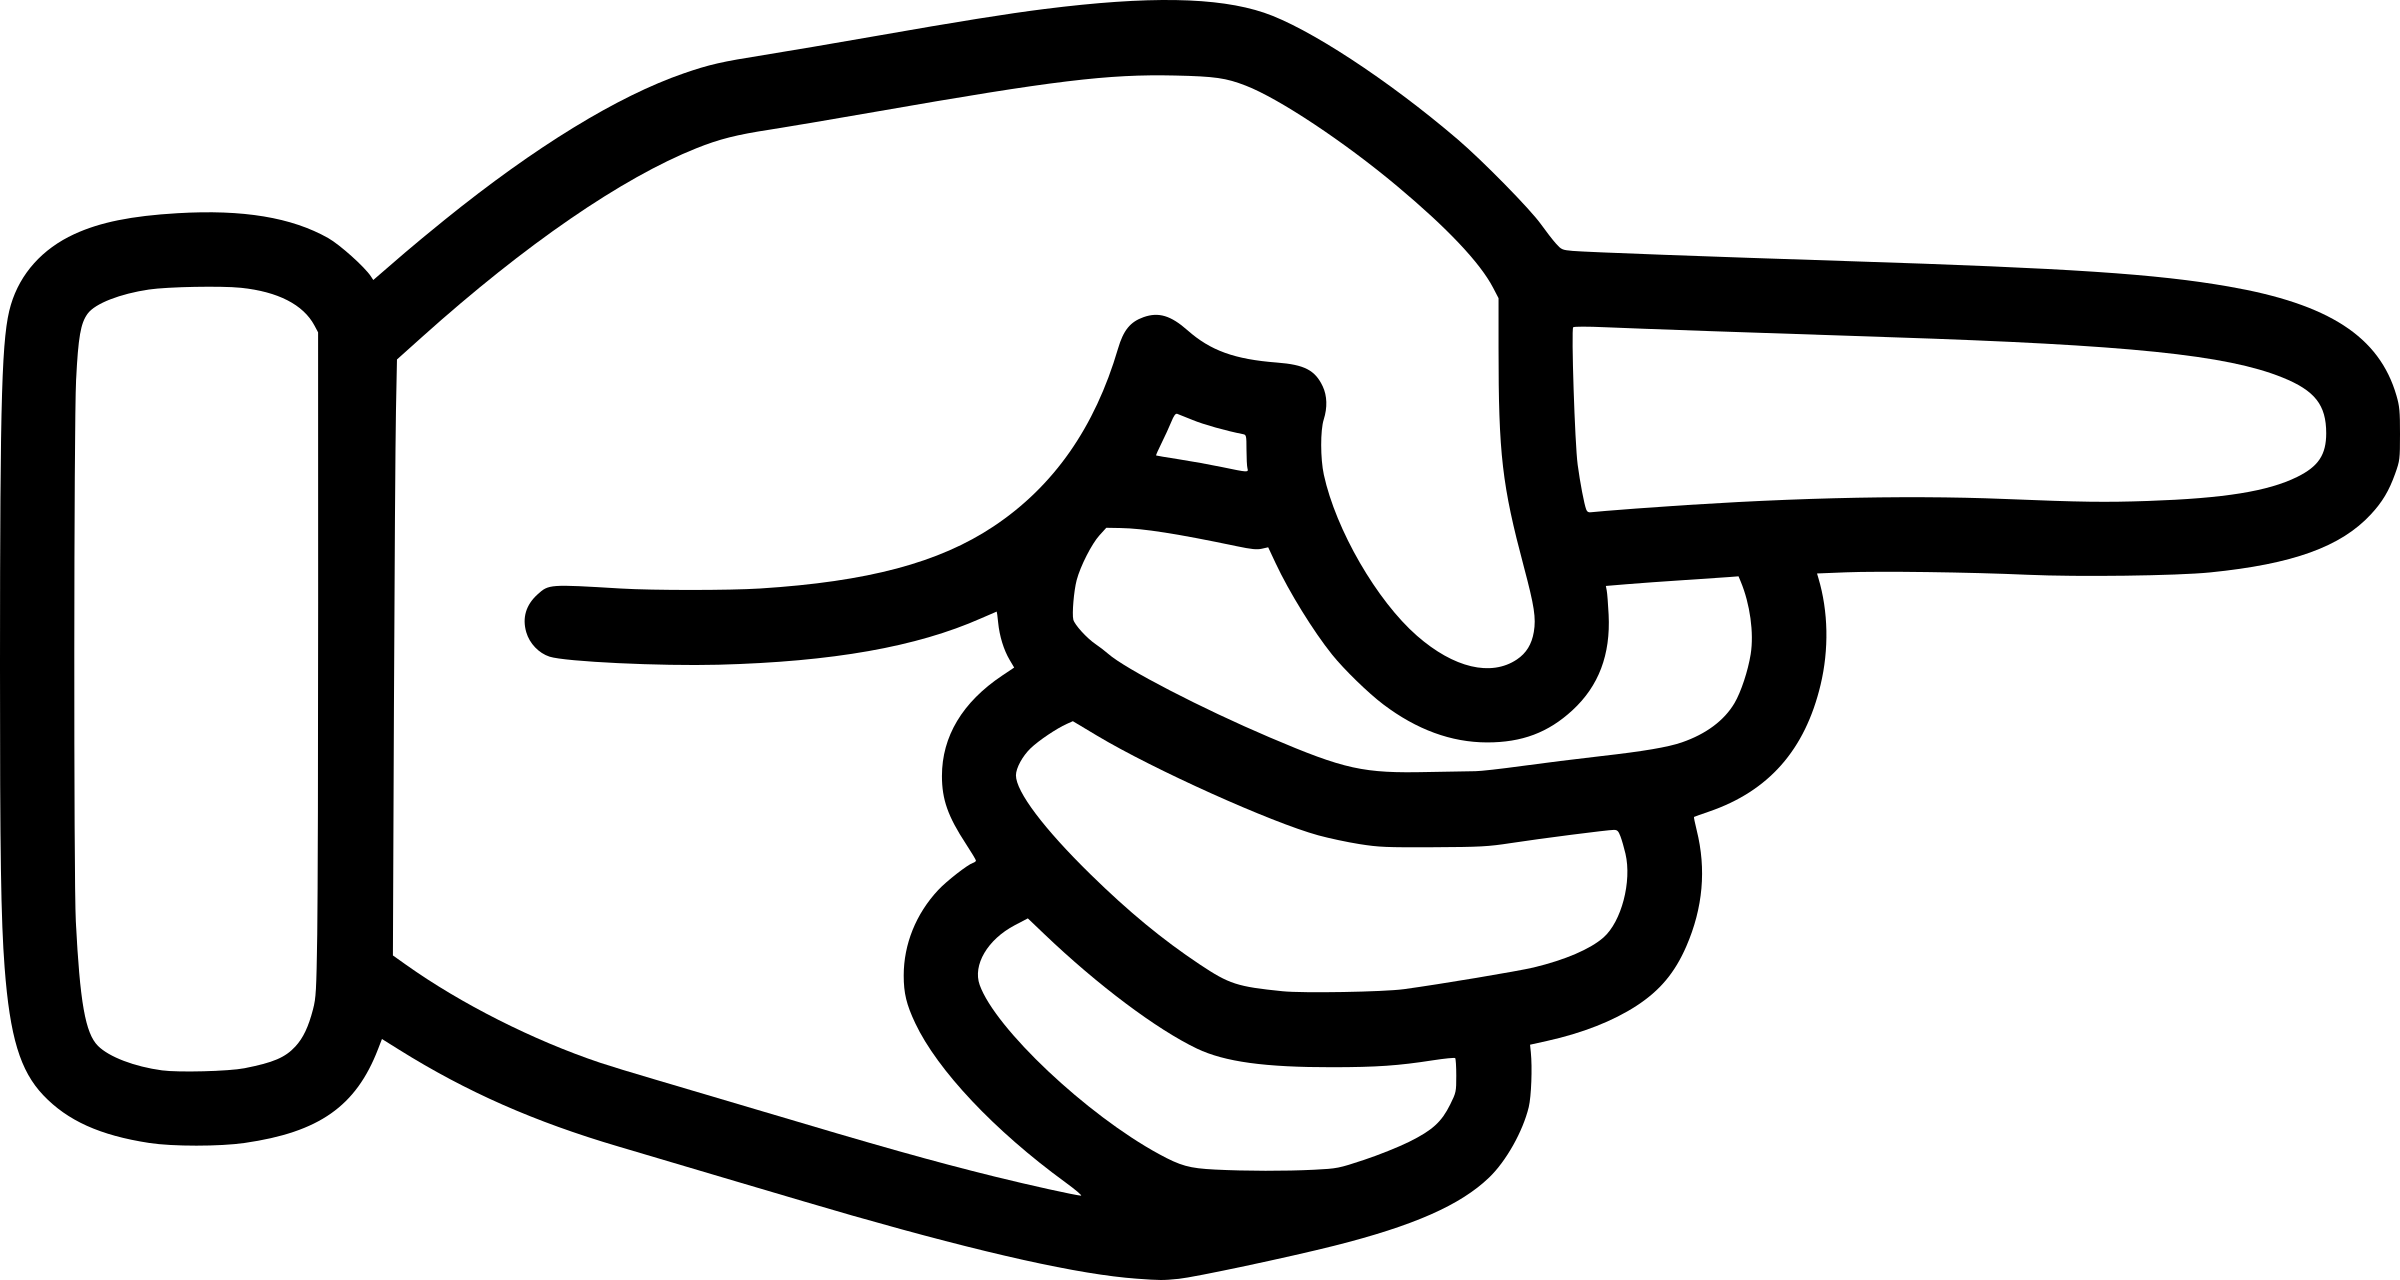 Finger pointing images clipart images gallery for free download.